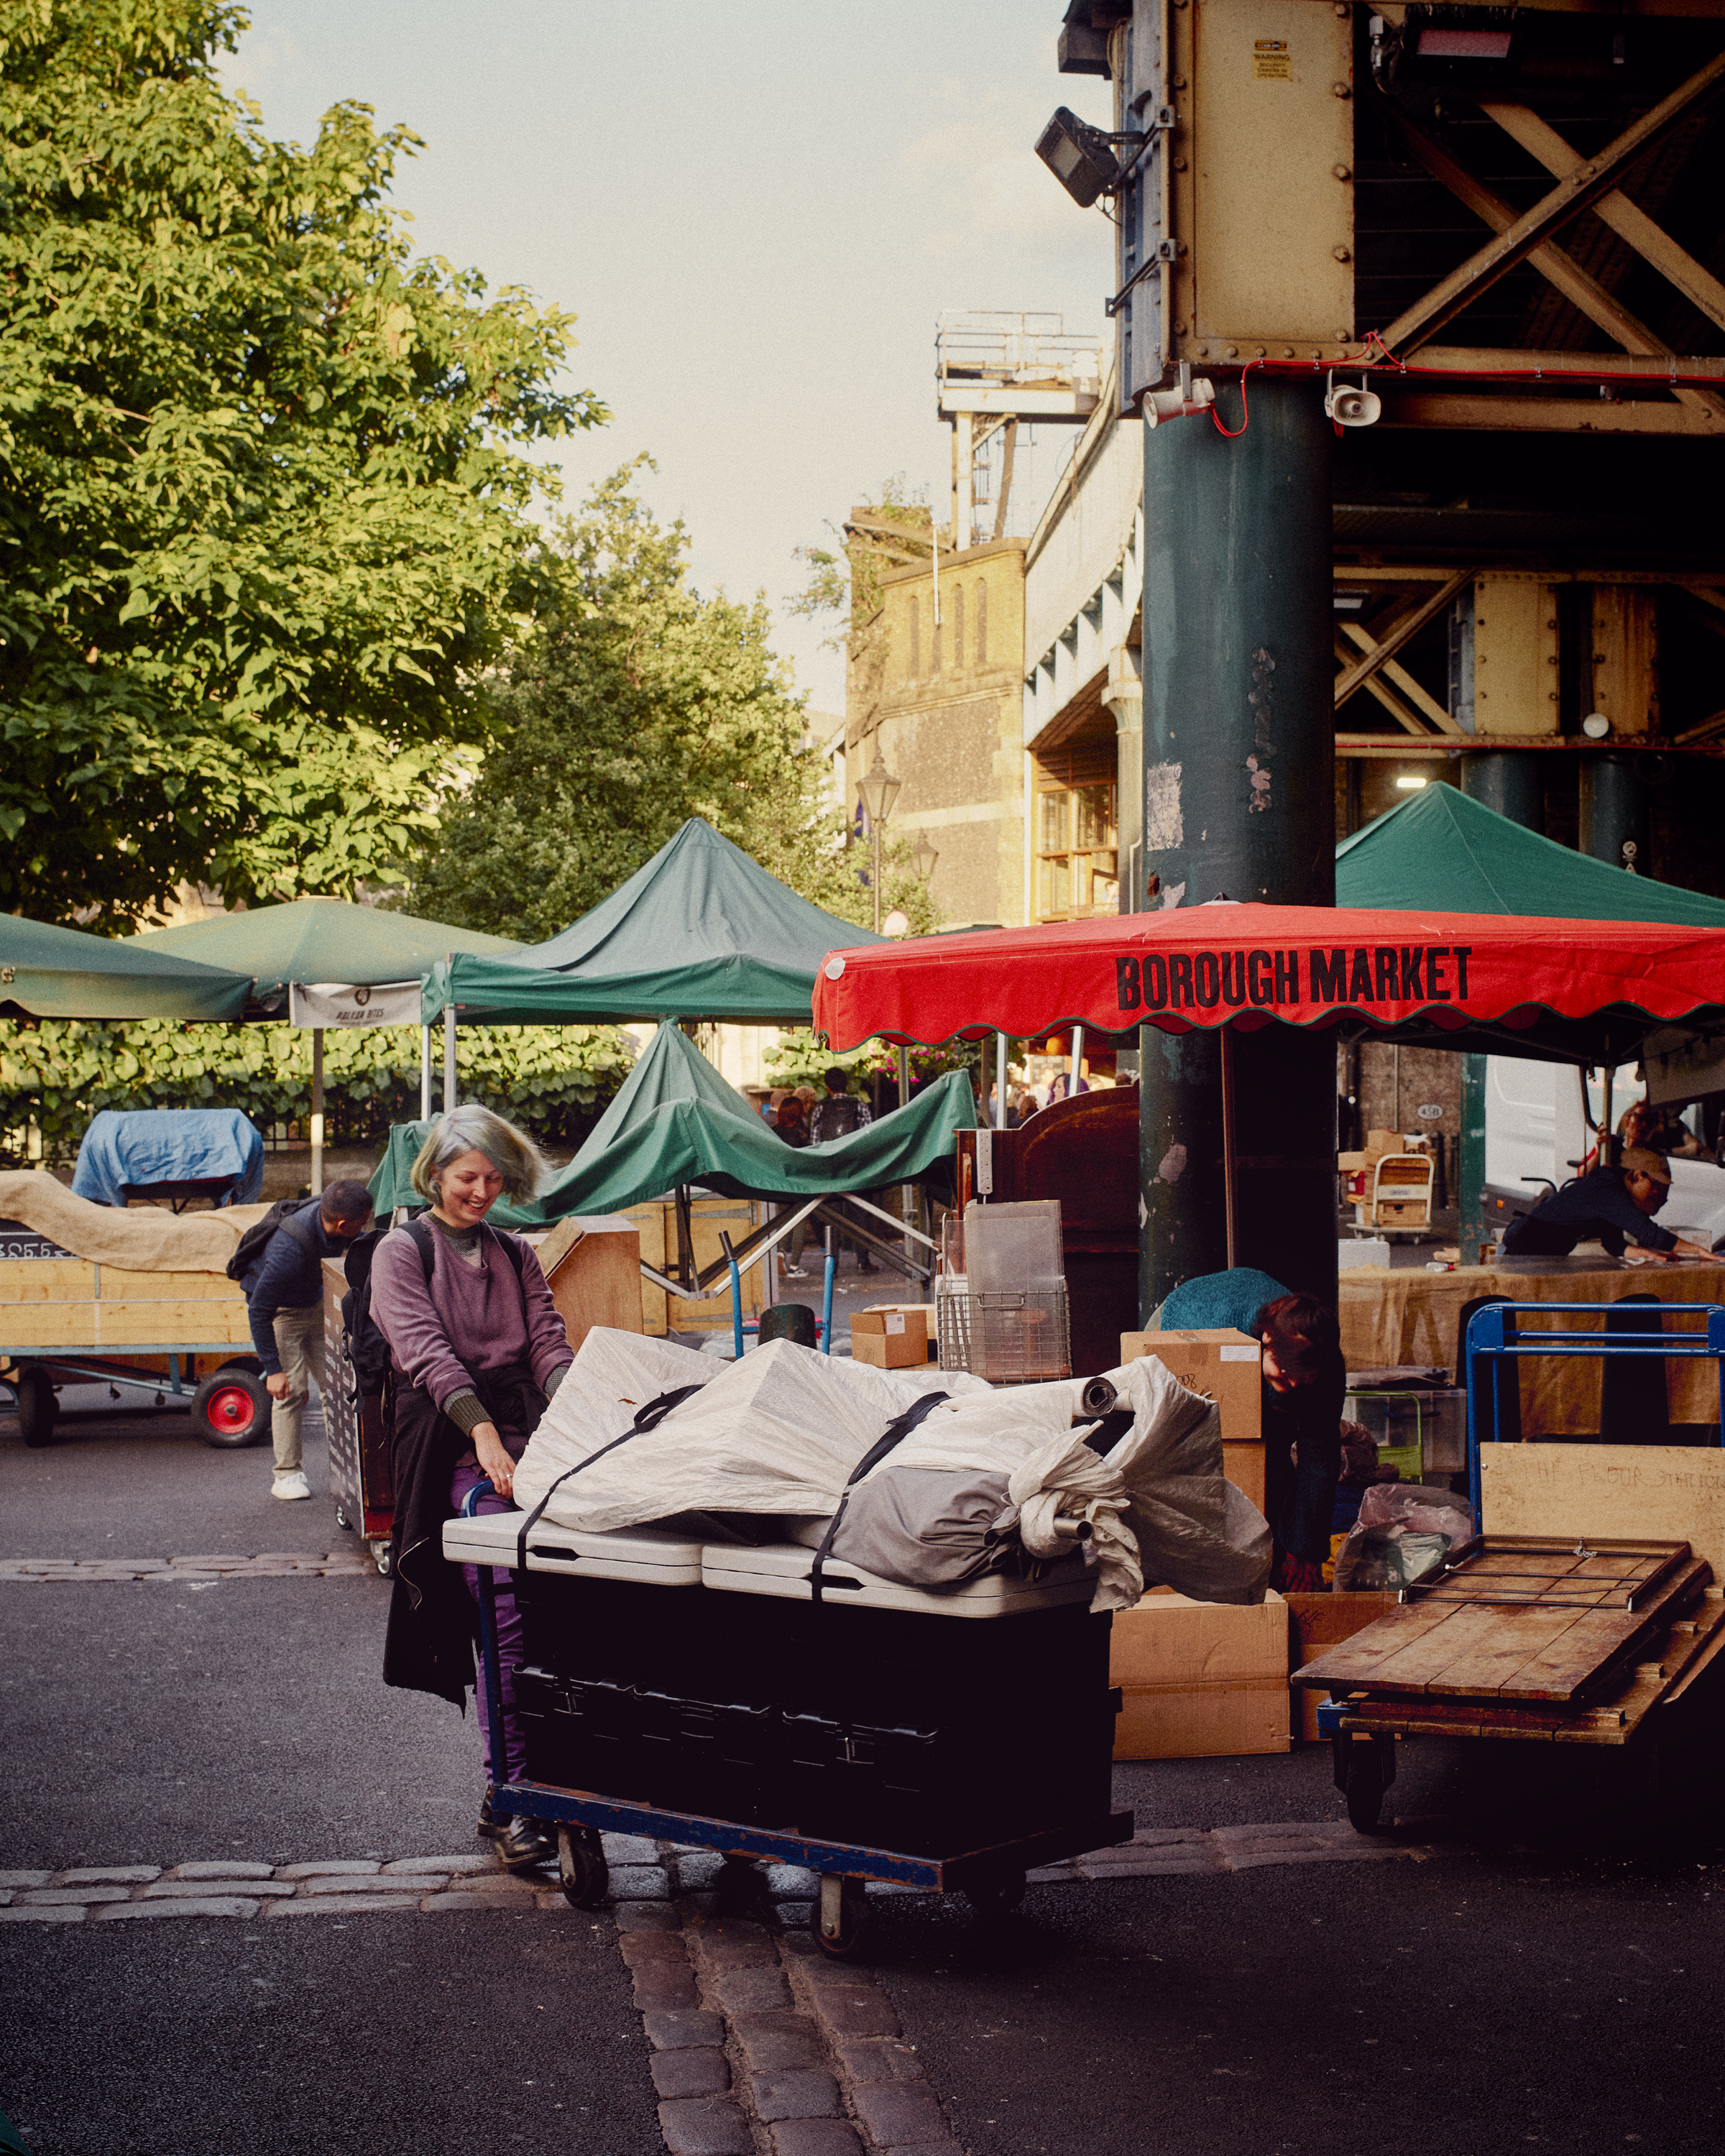 Borough_Market_1160.jpg